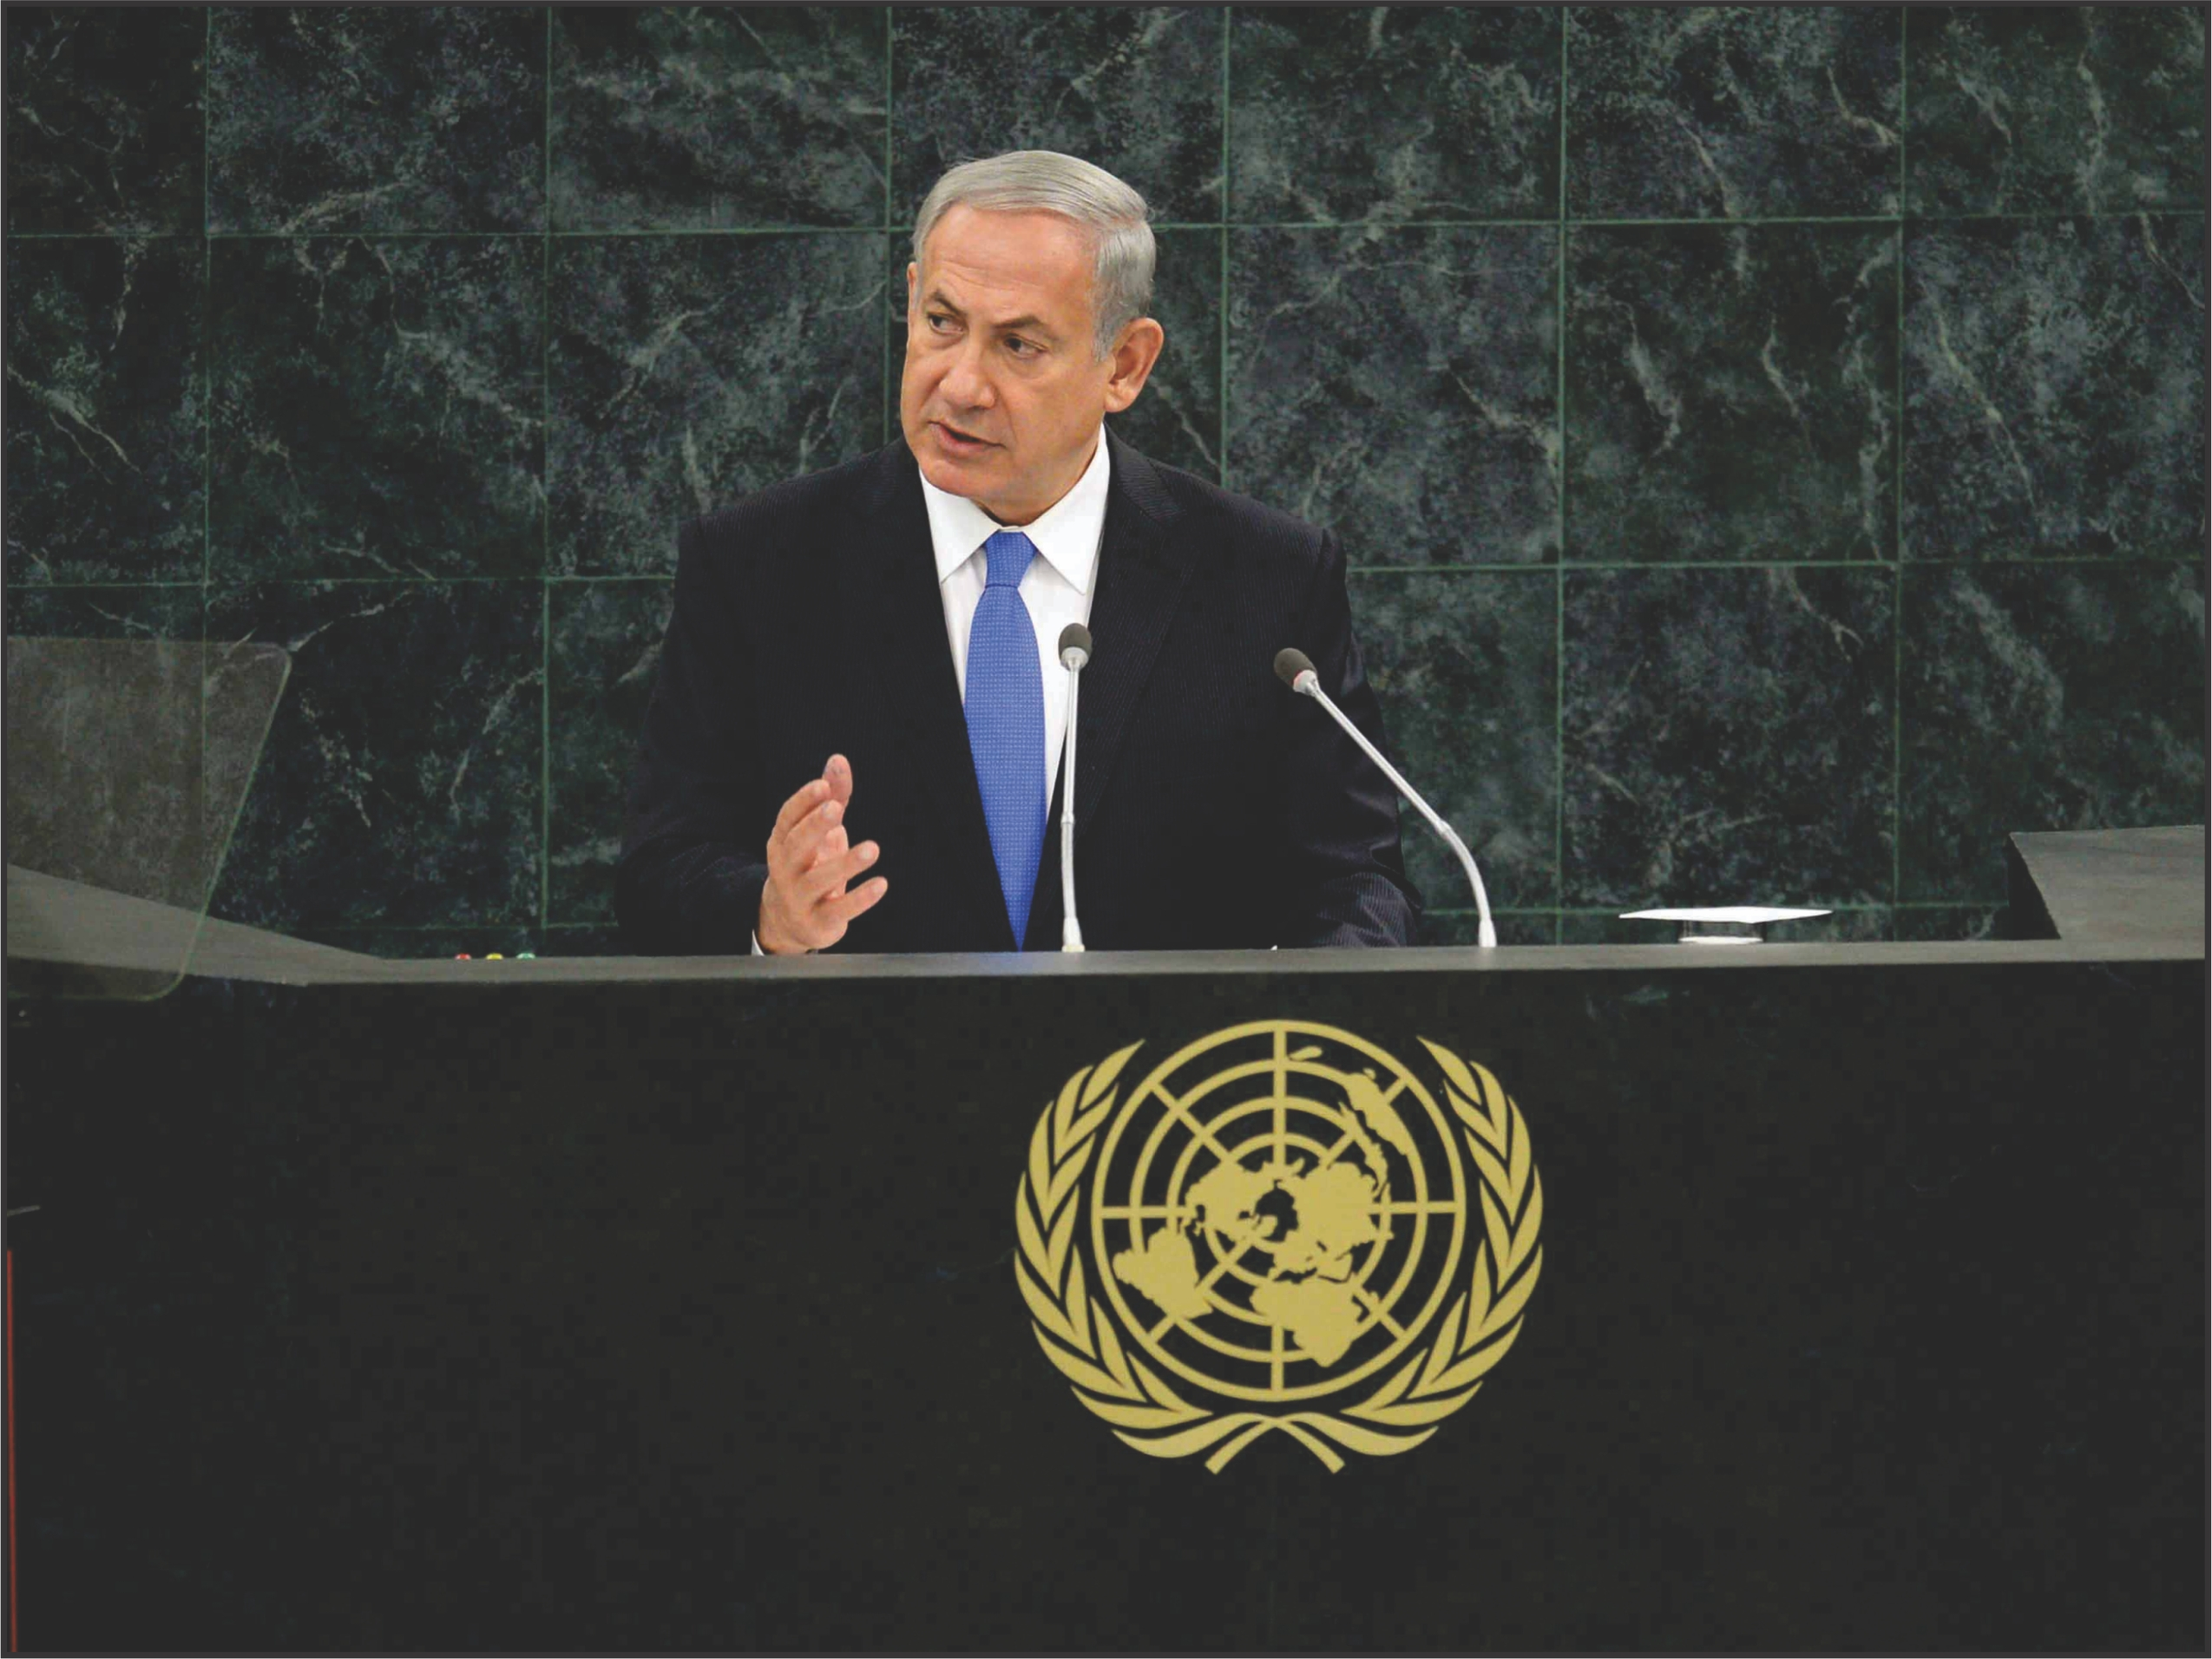 Israeli Prime Minister, Benjamin Netanyahu, addresses the UN's General Assembly at the end of his Americas' tour.